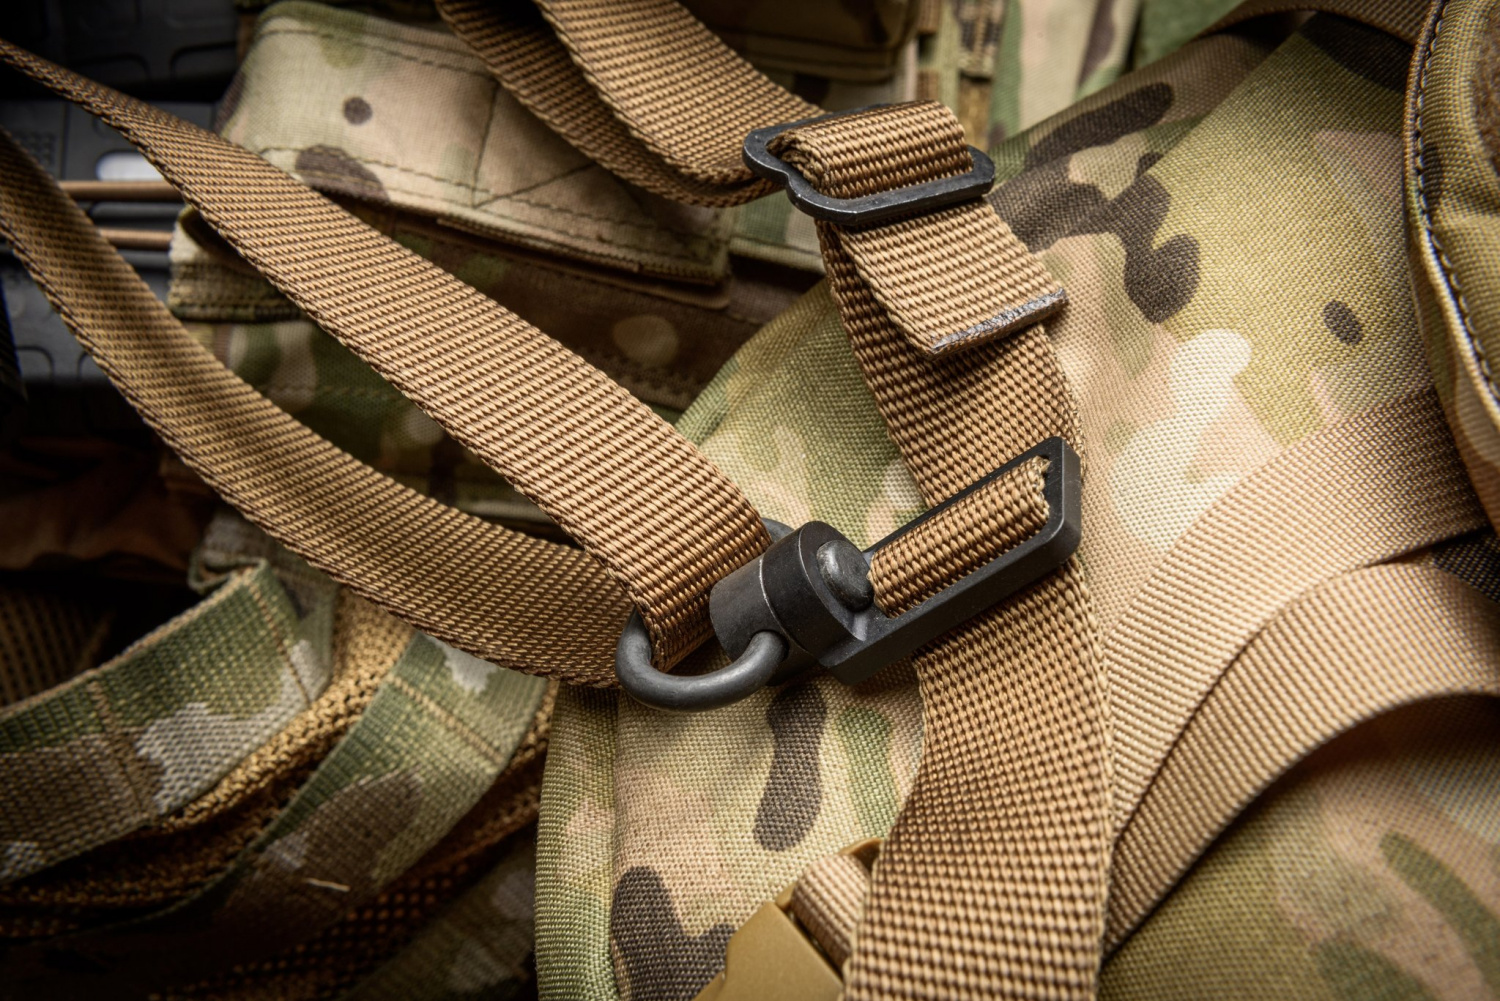 Swinger T10 Sling System from Tech Ten Tactical